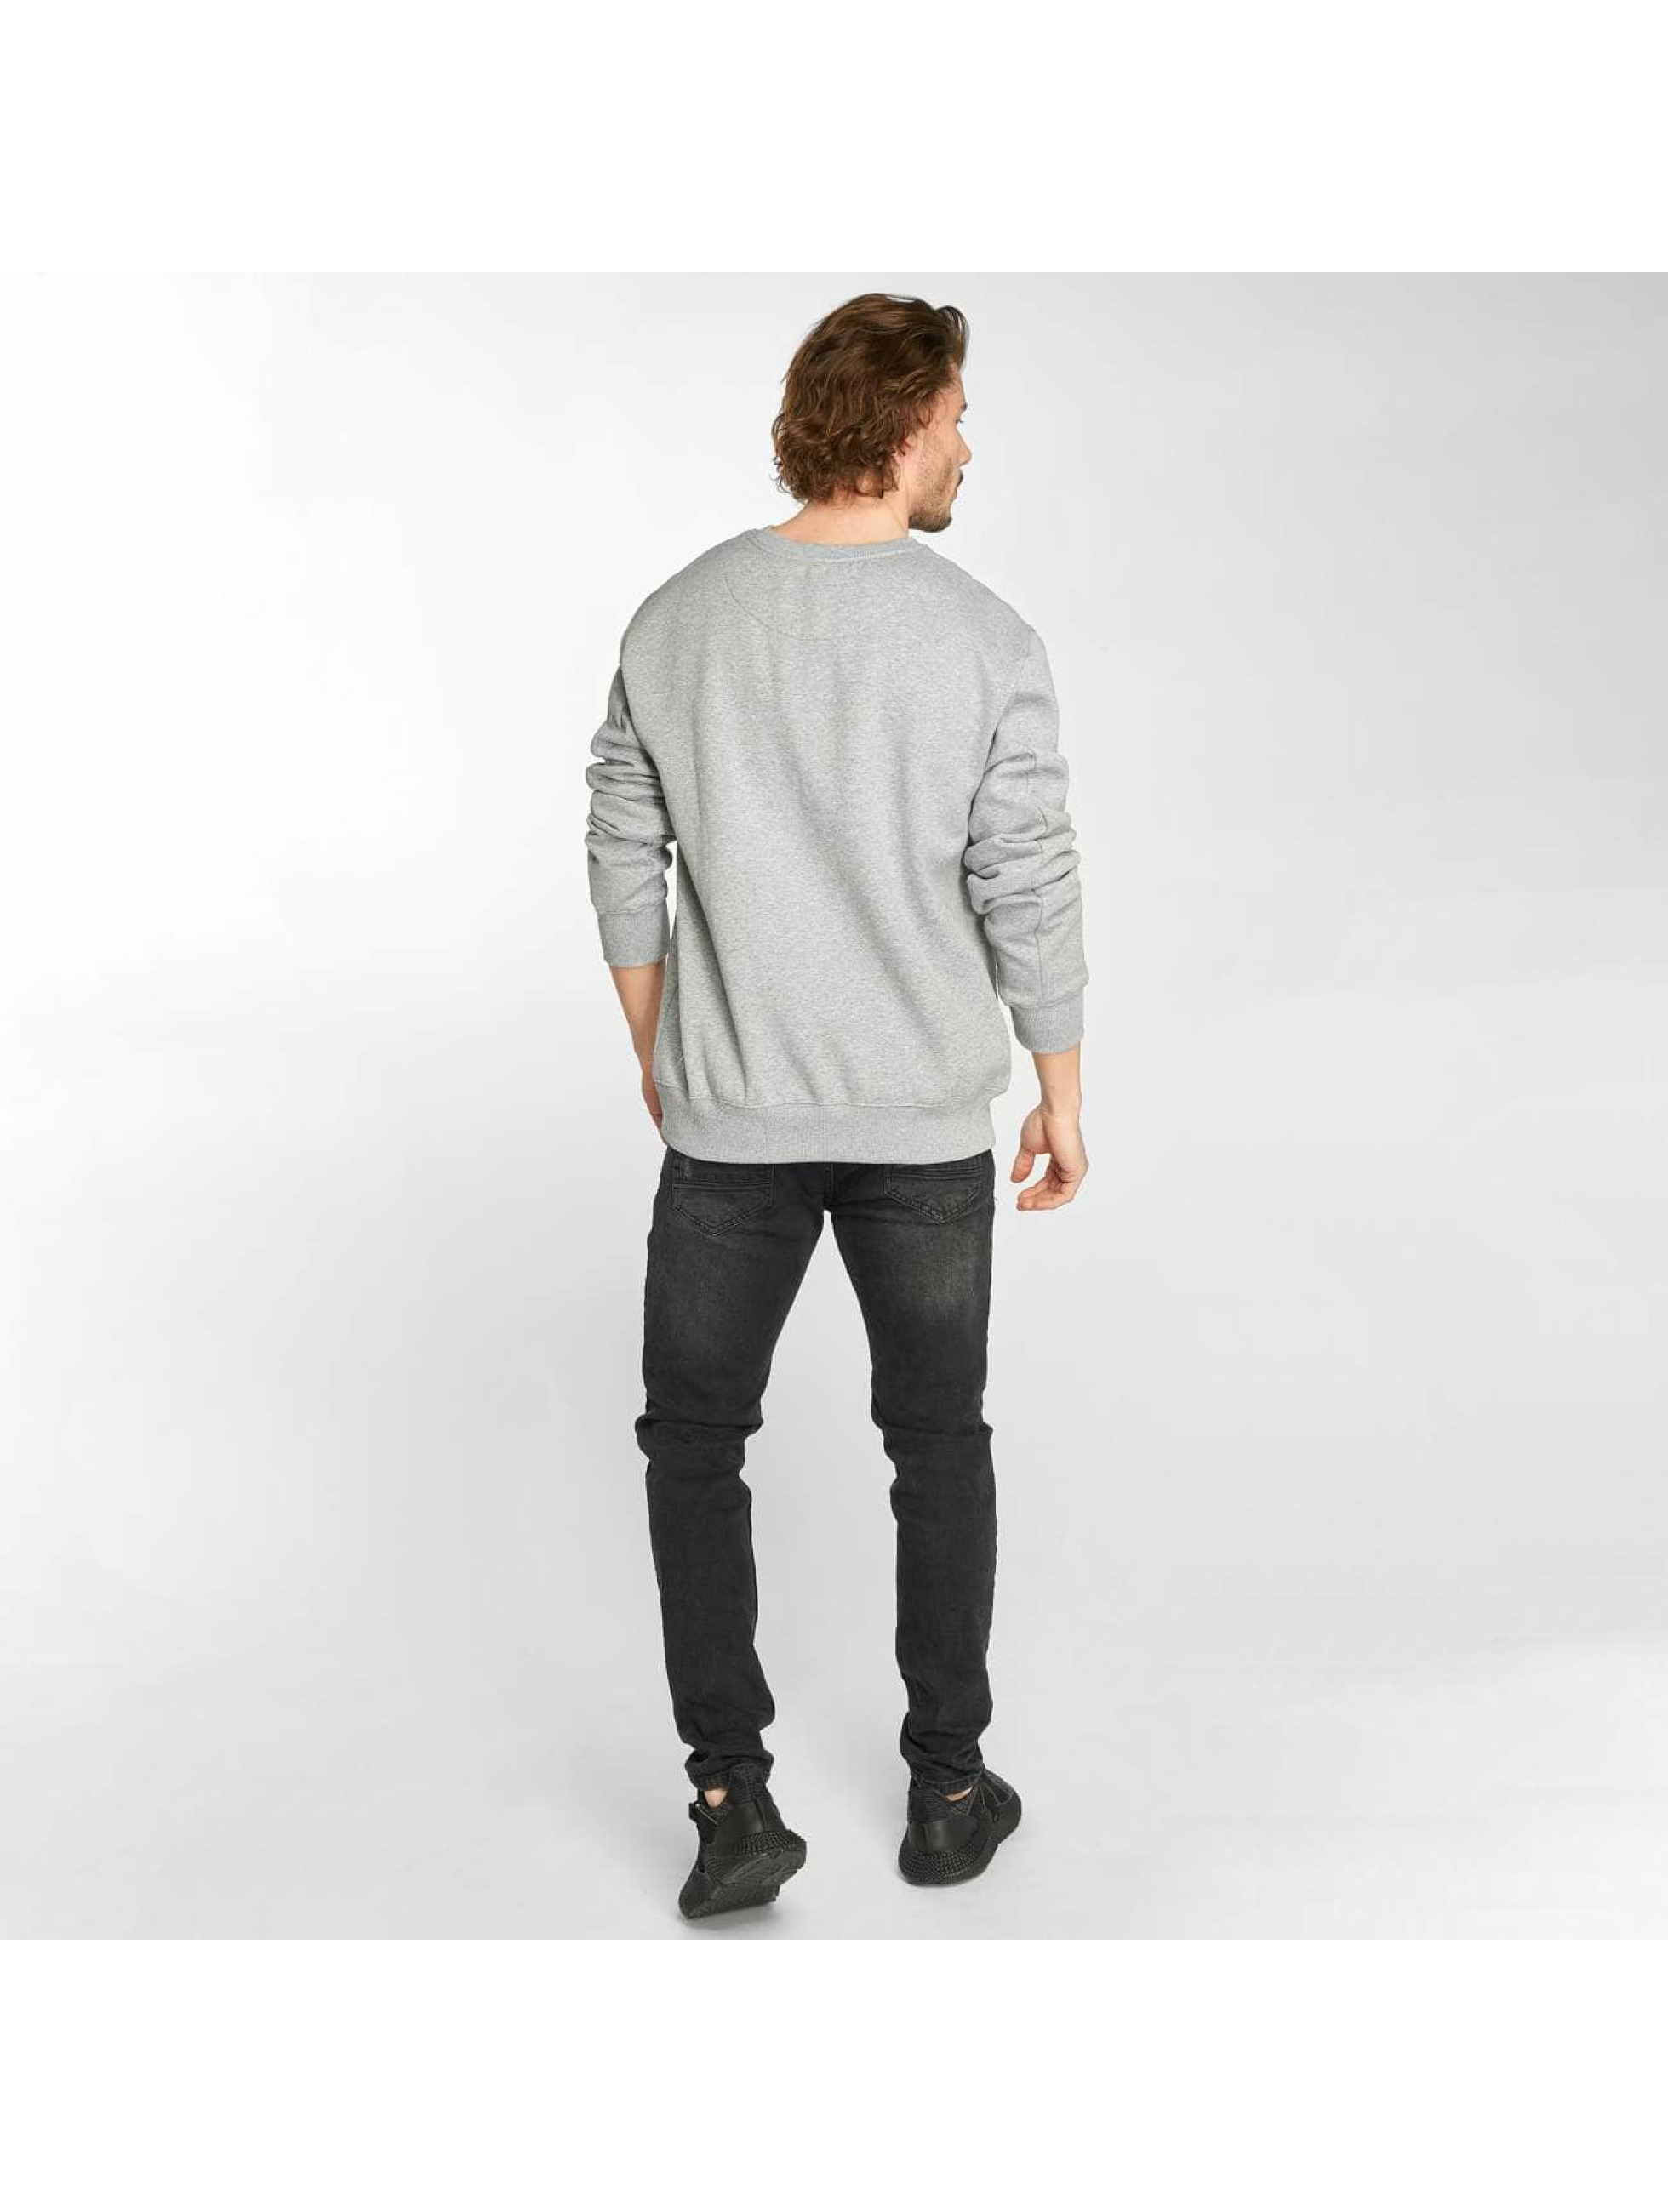 Distorted People Jumper Tribe grey